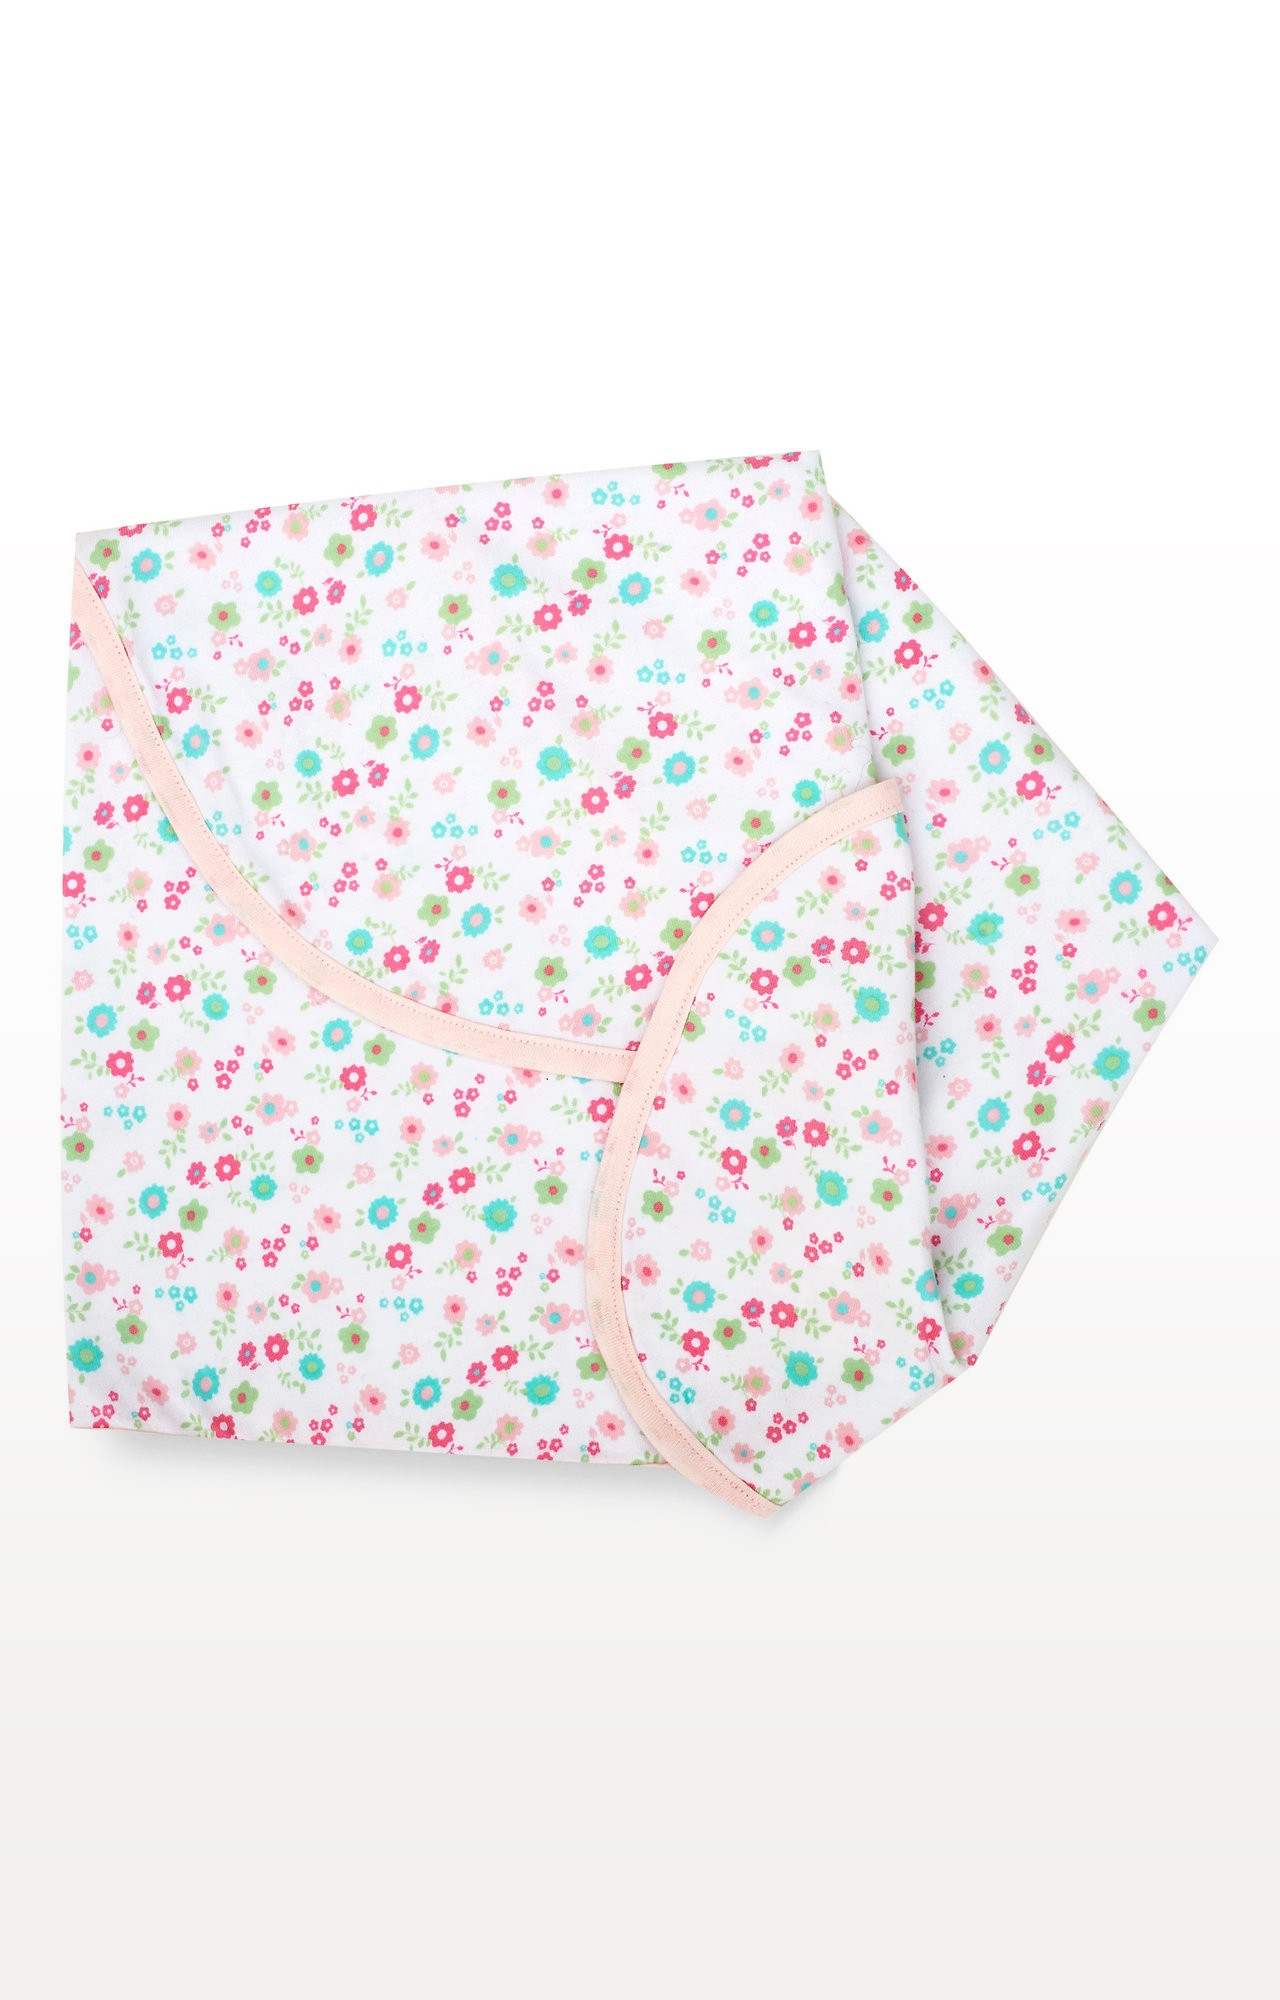 Mothercare | Mothercare Swaddling Blanket - Pink